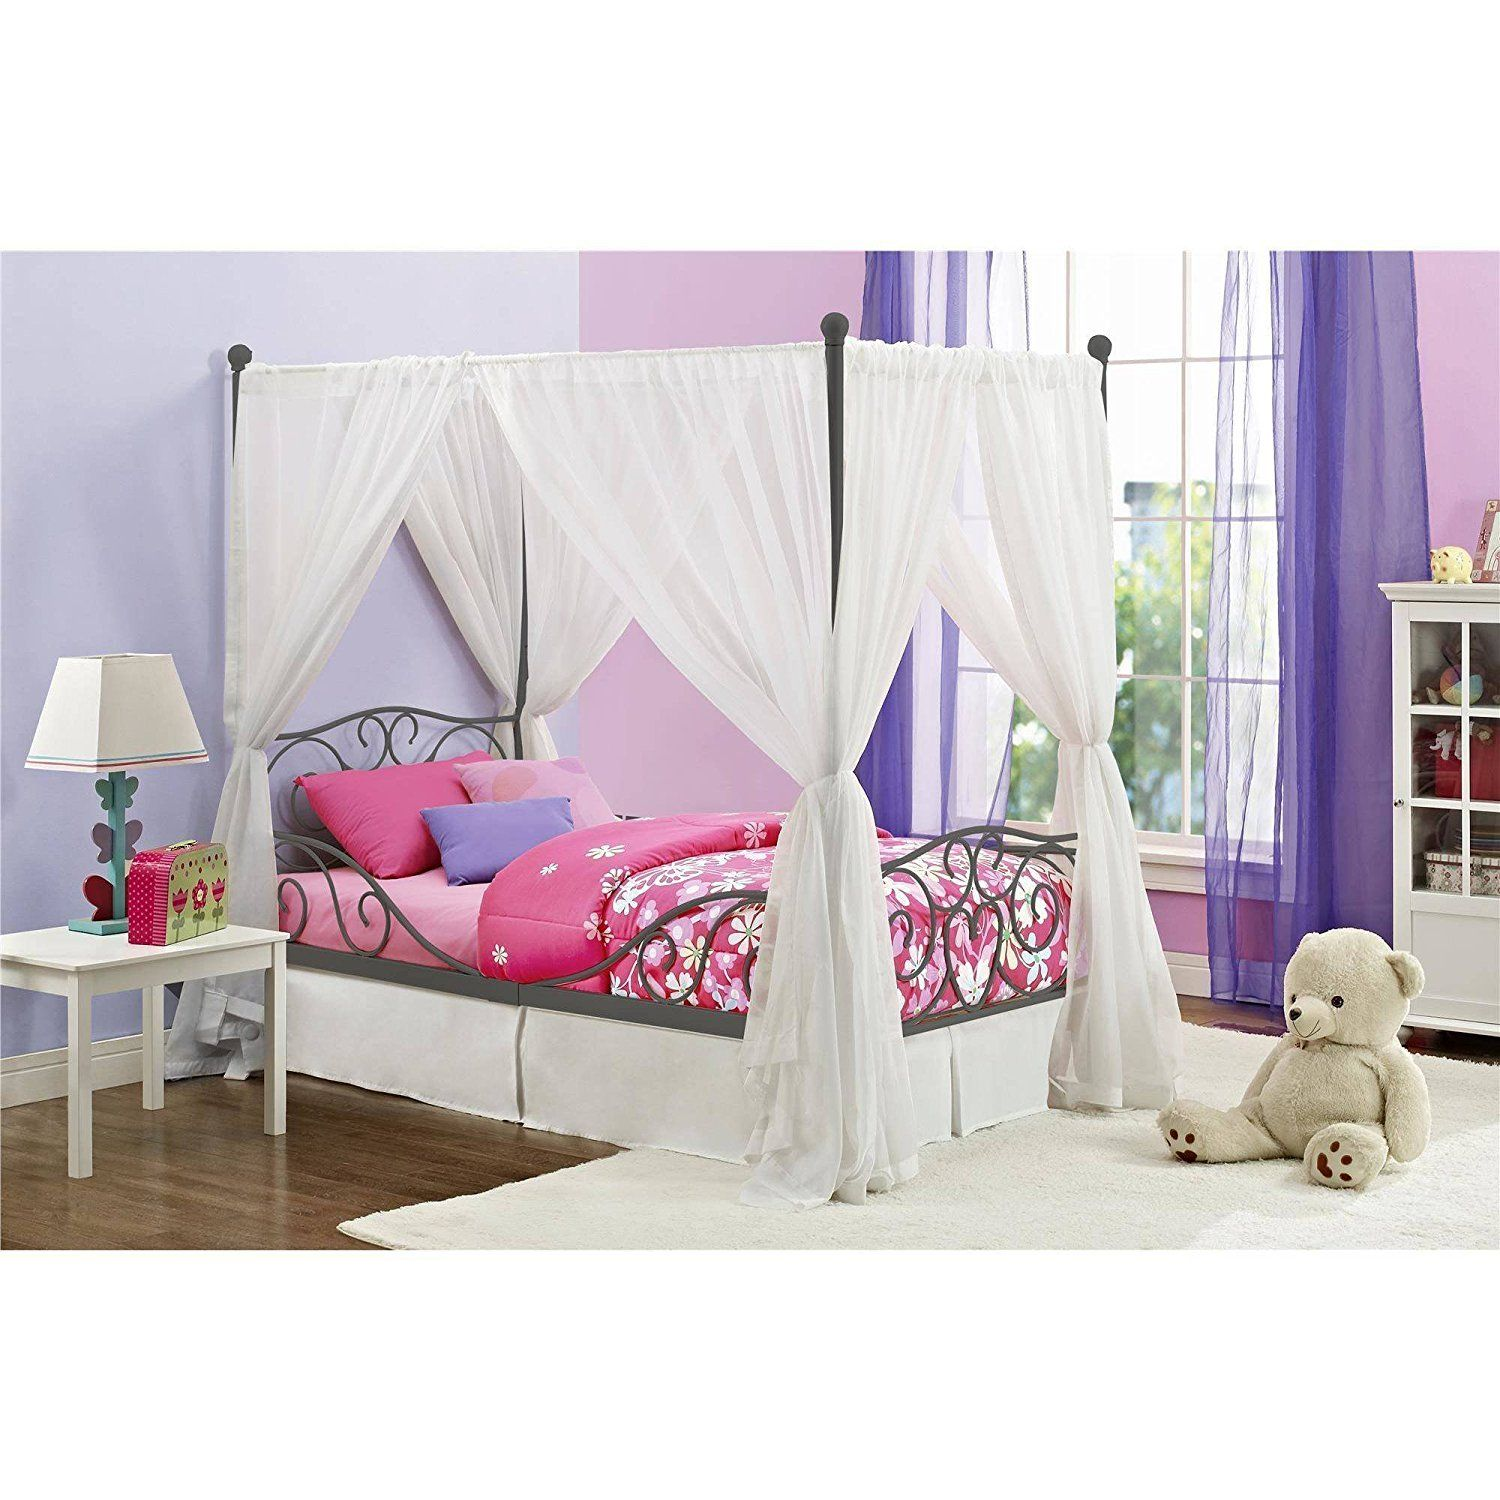 Girl\'s Grey Metal Canopy Bed Twin Sized Princess Gray | Creative ...